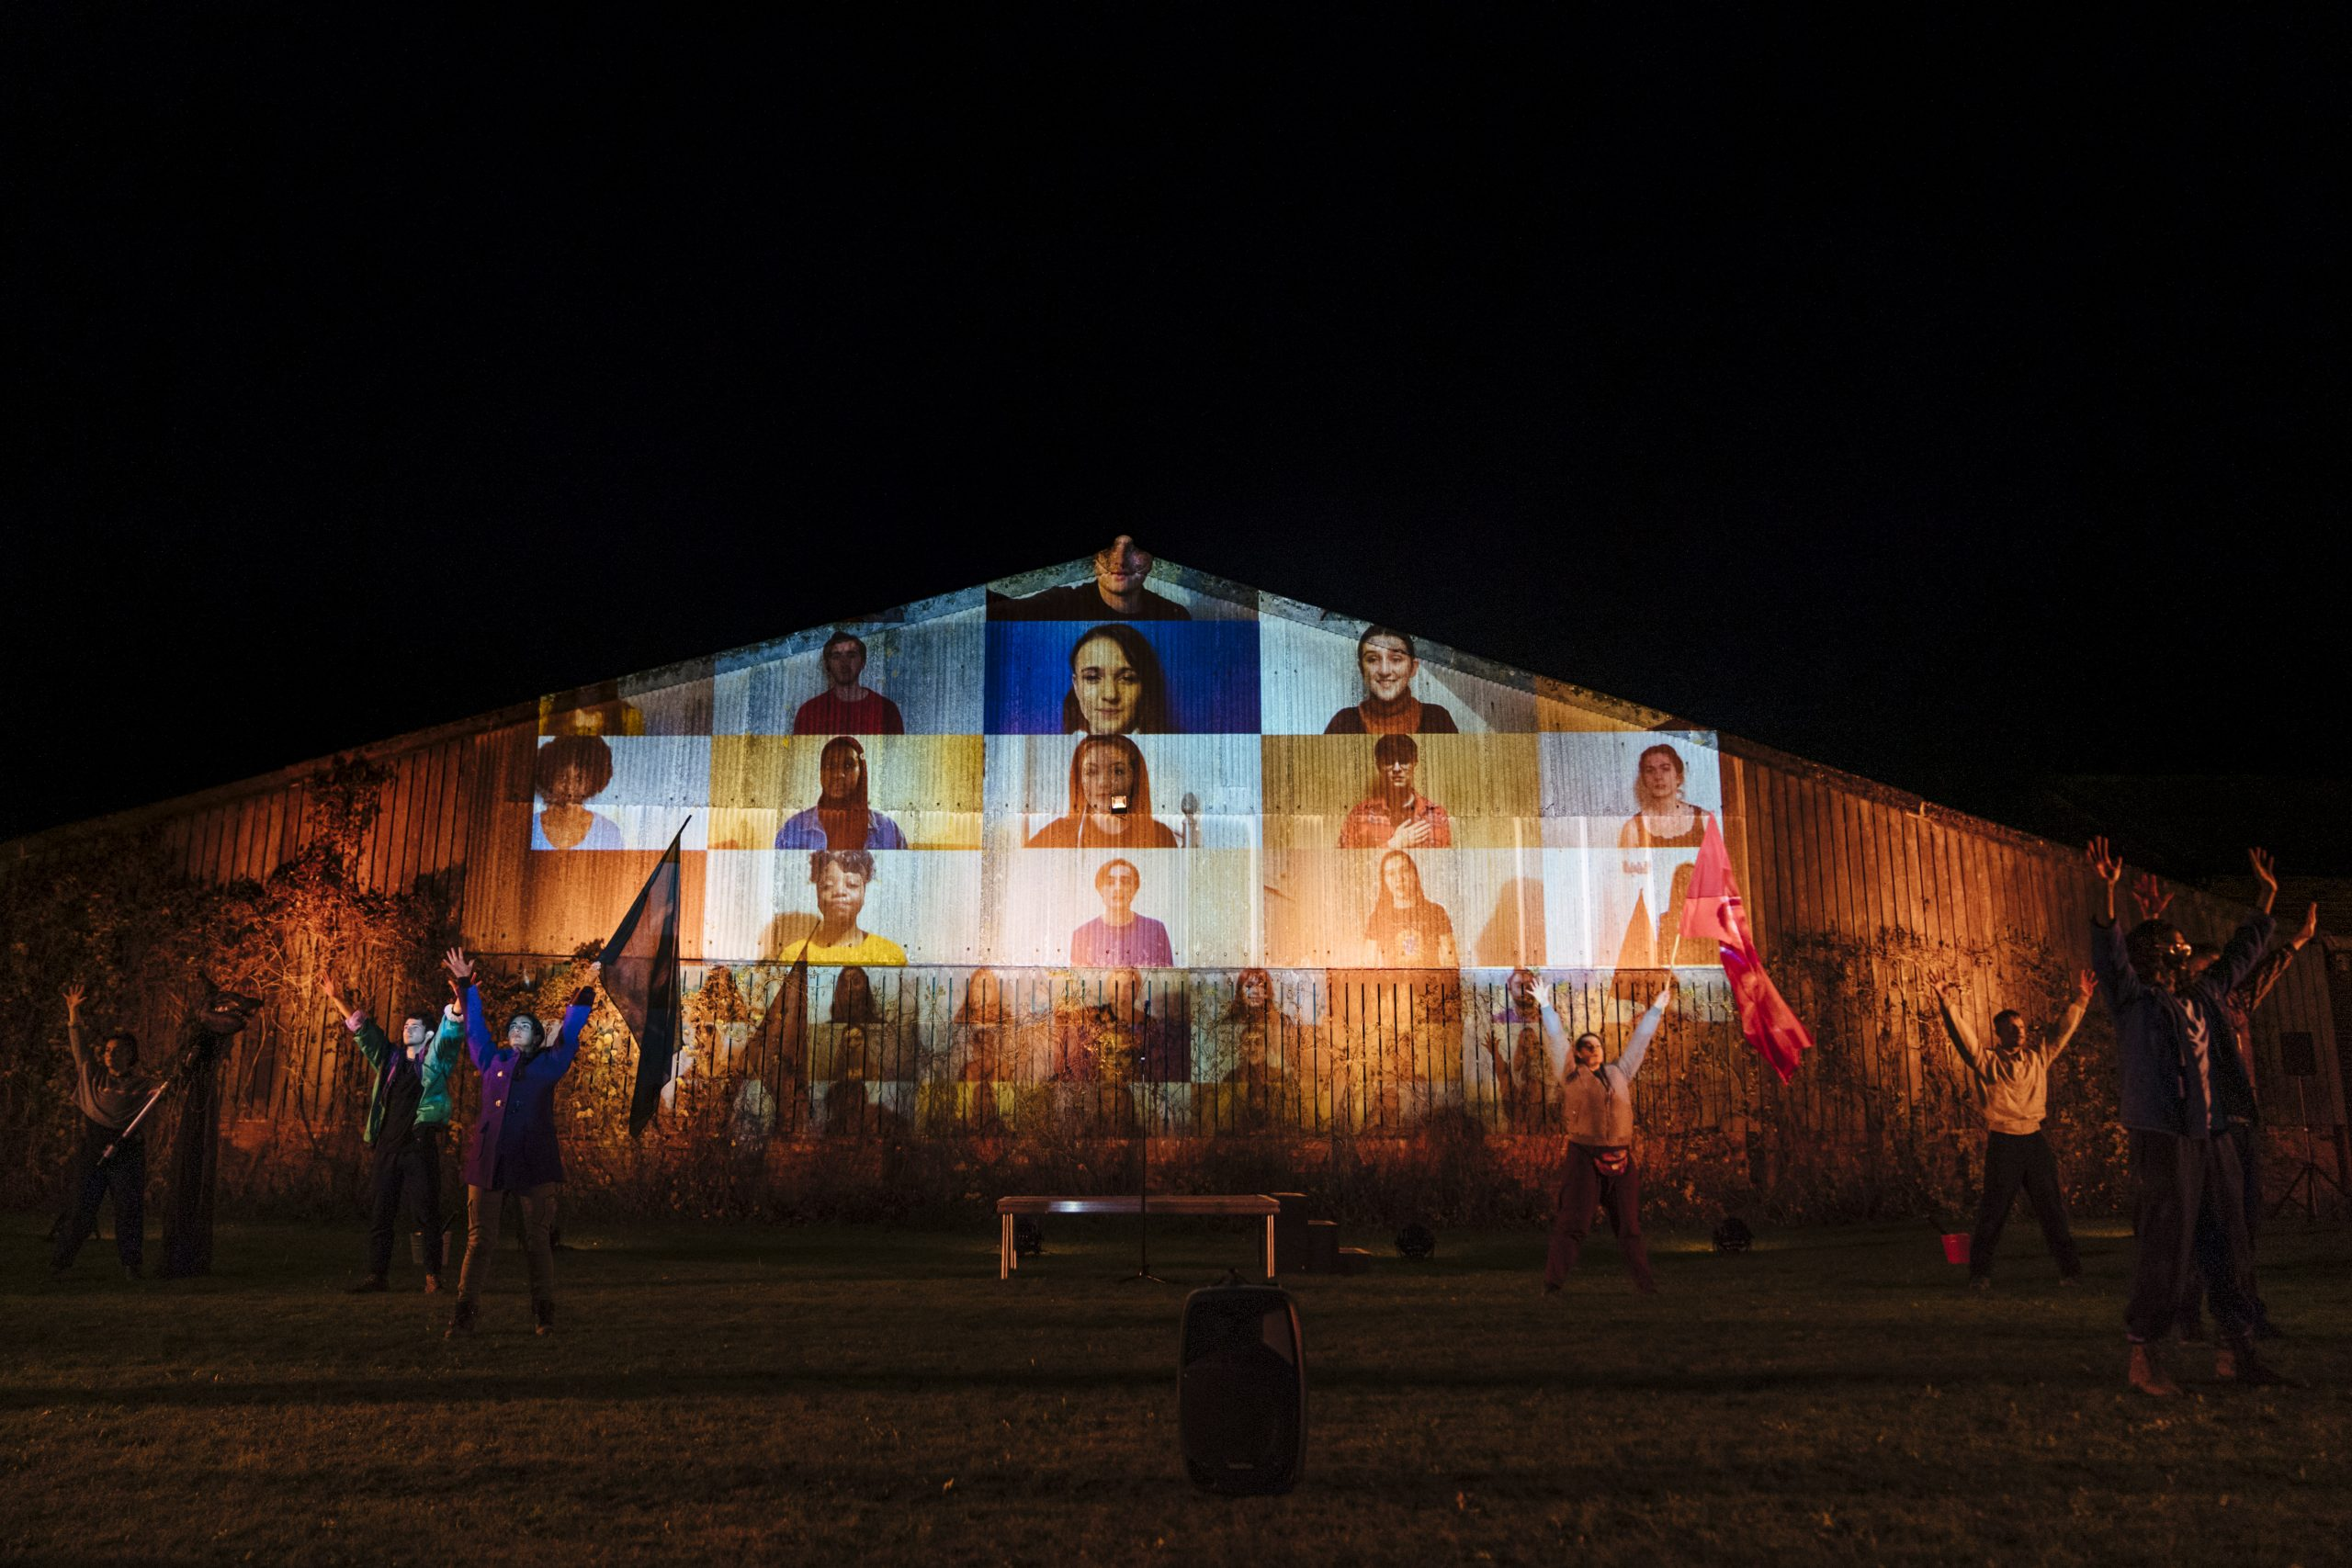 Projections of various National Youth Theatre cast members on the side of a building as part of the University of Hull co-production of The Last Harvest